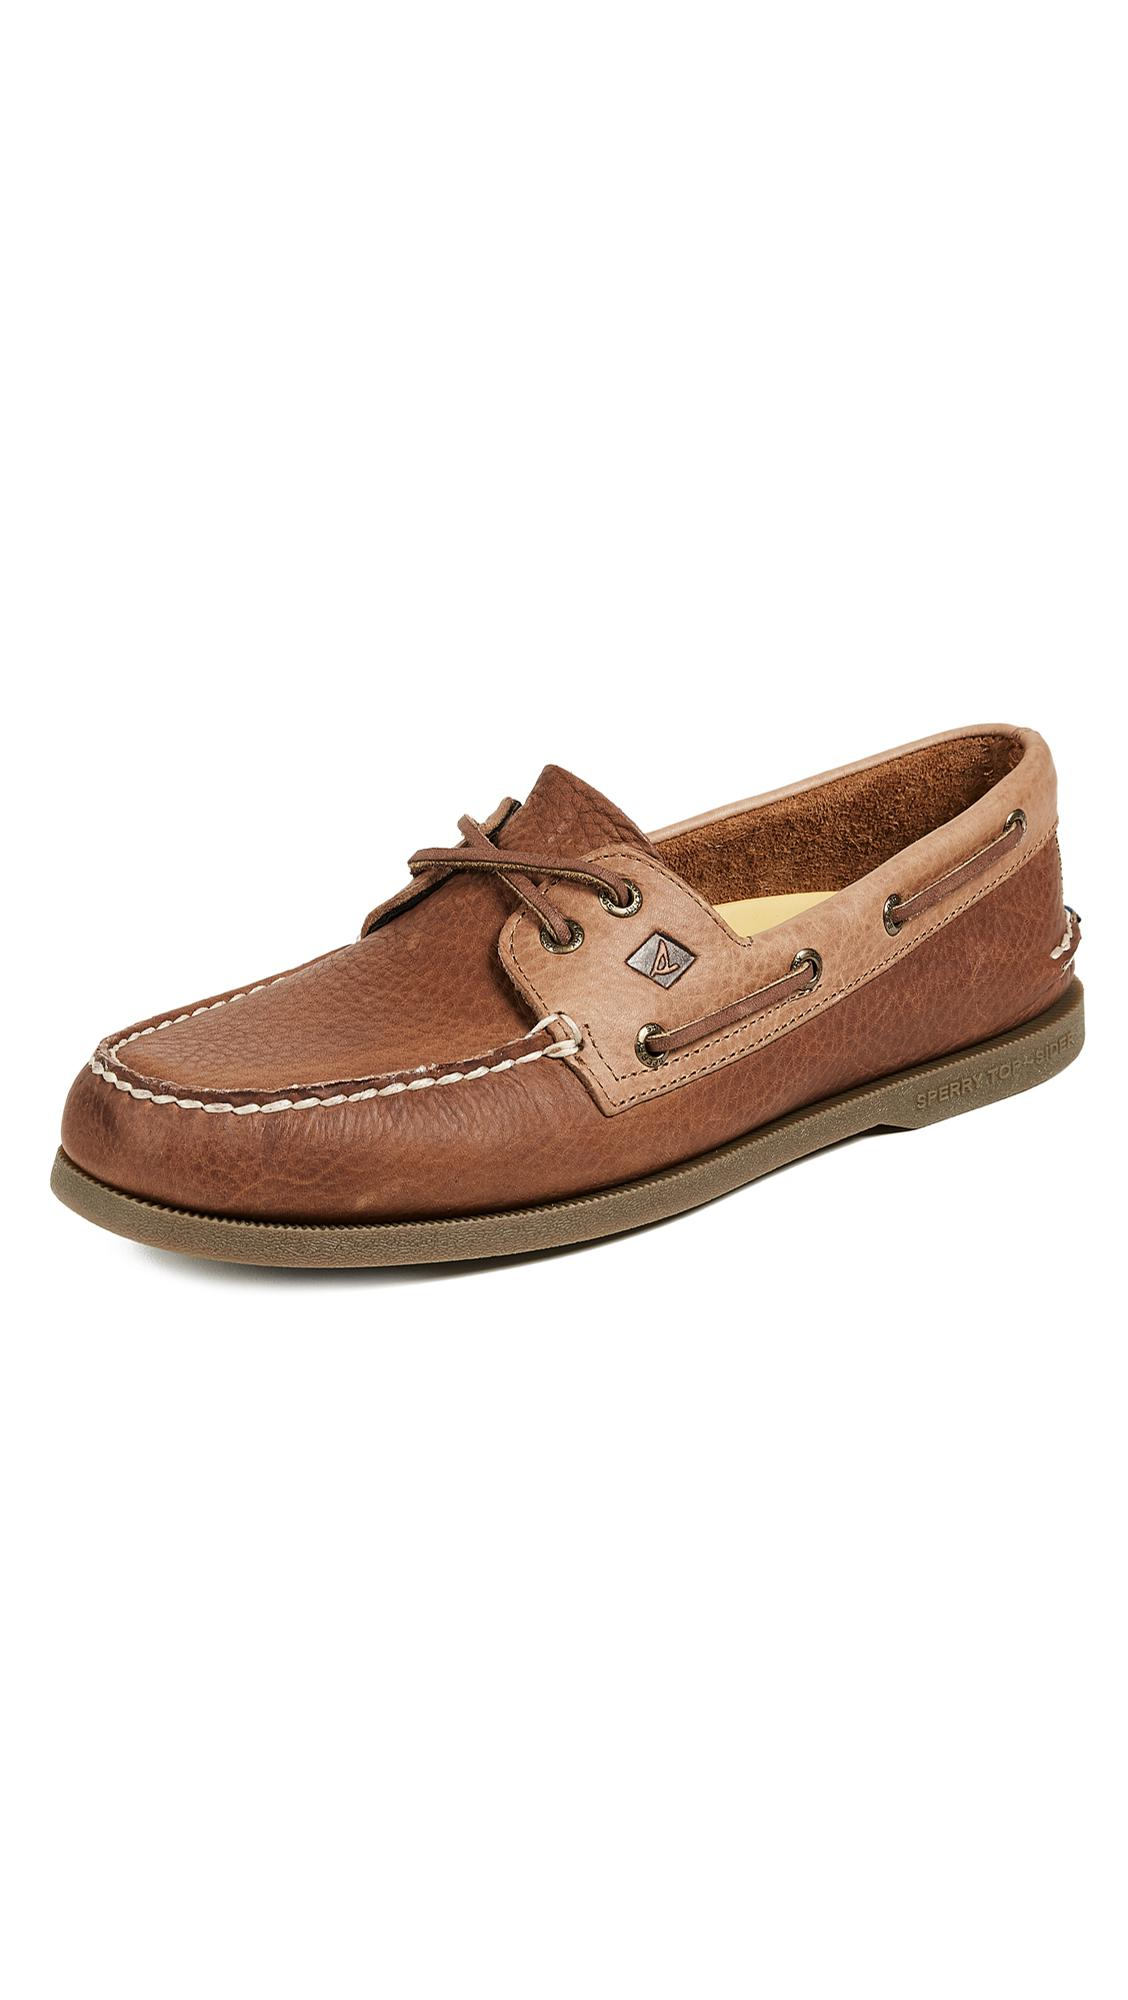 low price cheap price Sperry Topsider Daytona Boat Shoes In Tan cheap online shop fast delivery cheap online cheap sale shop for 5RFyWo06x